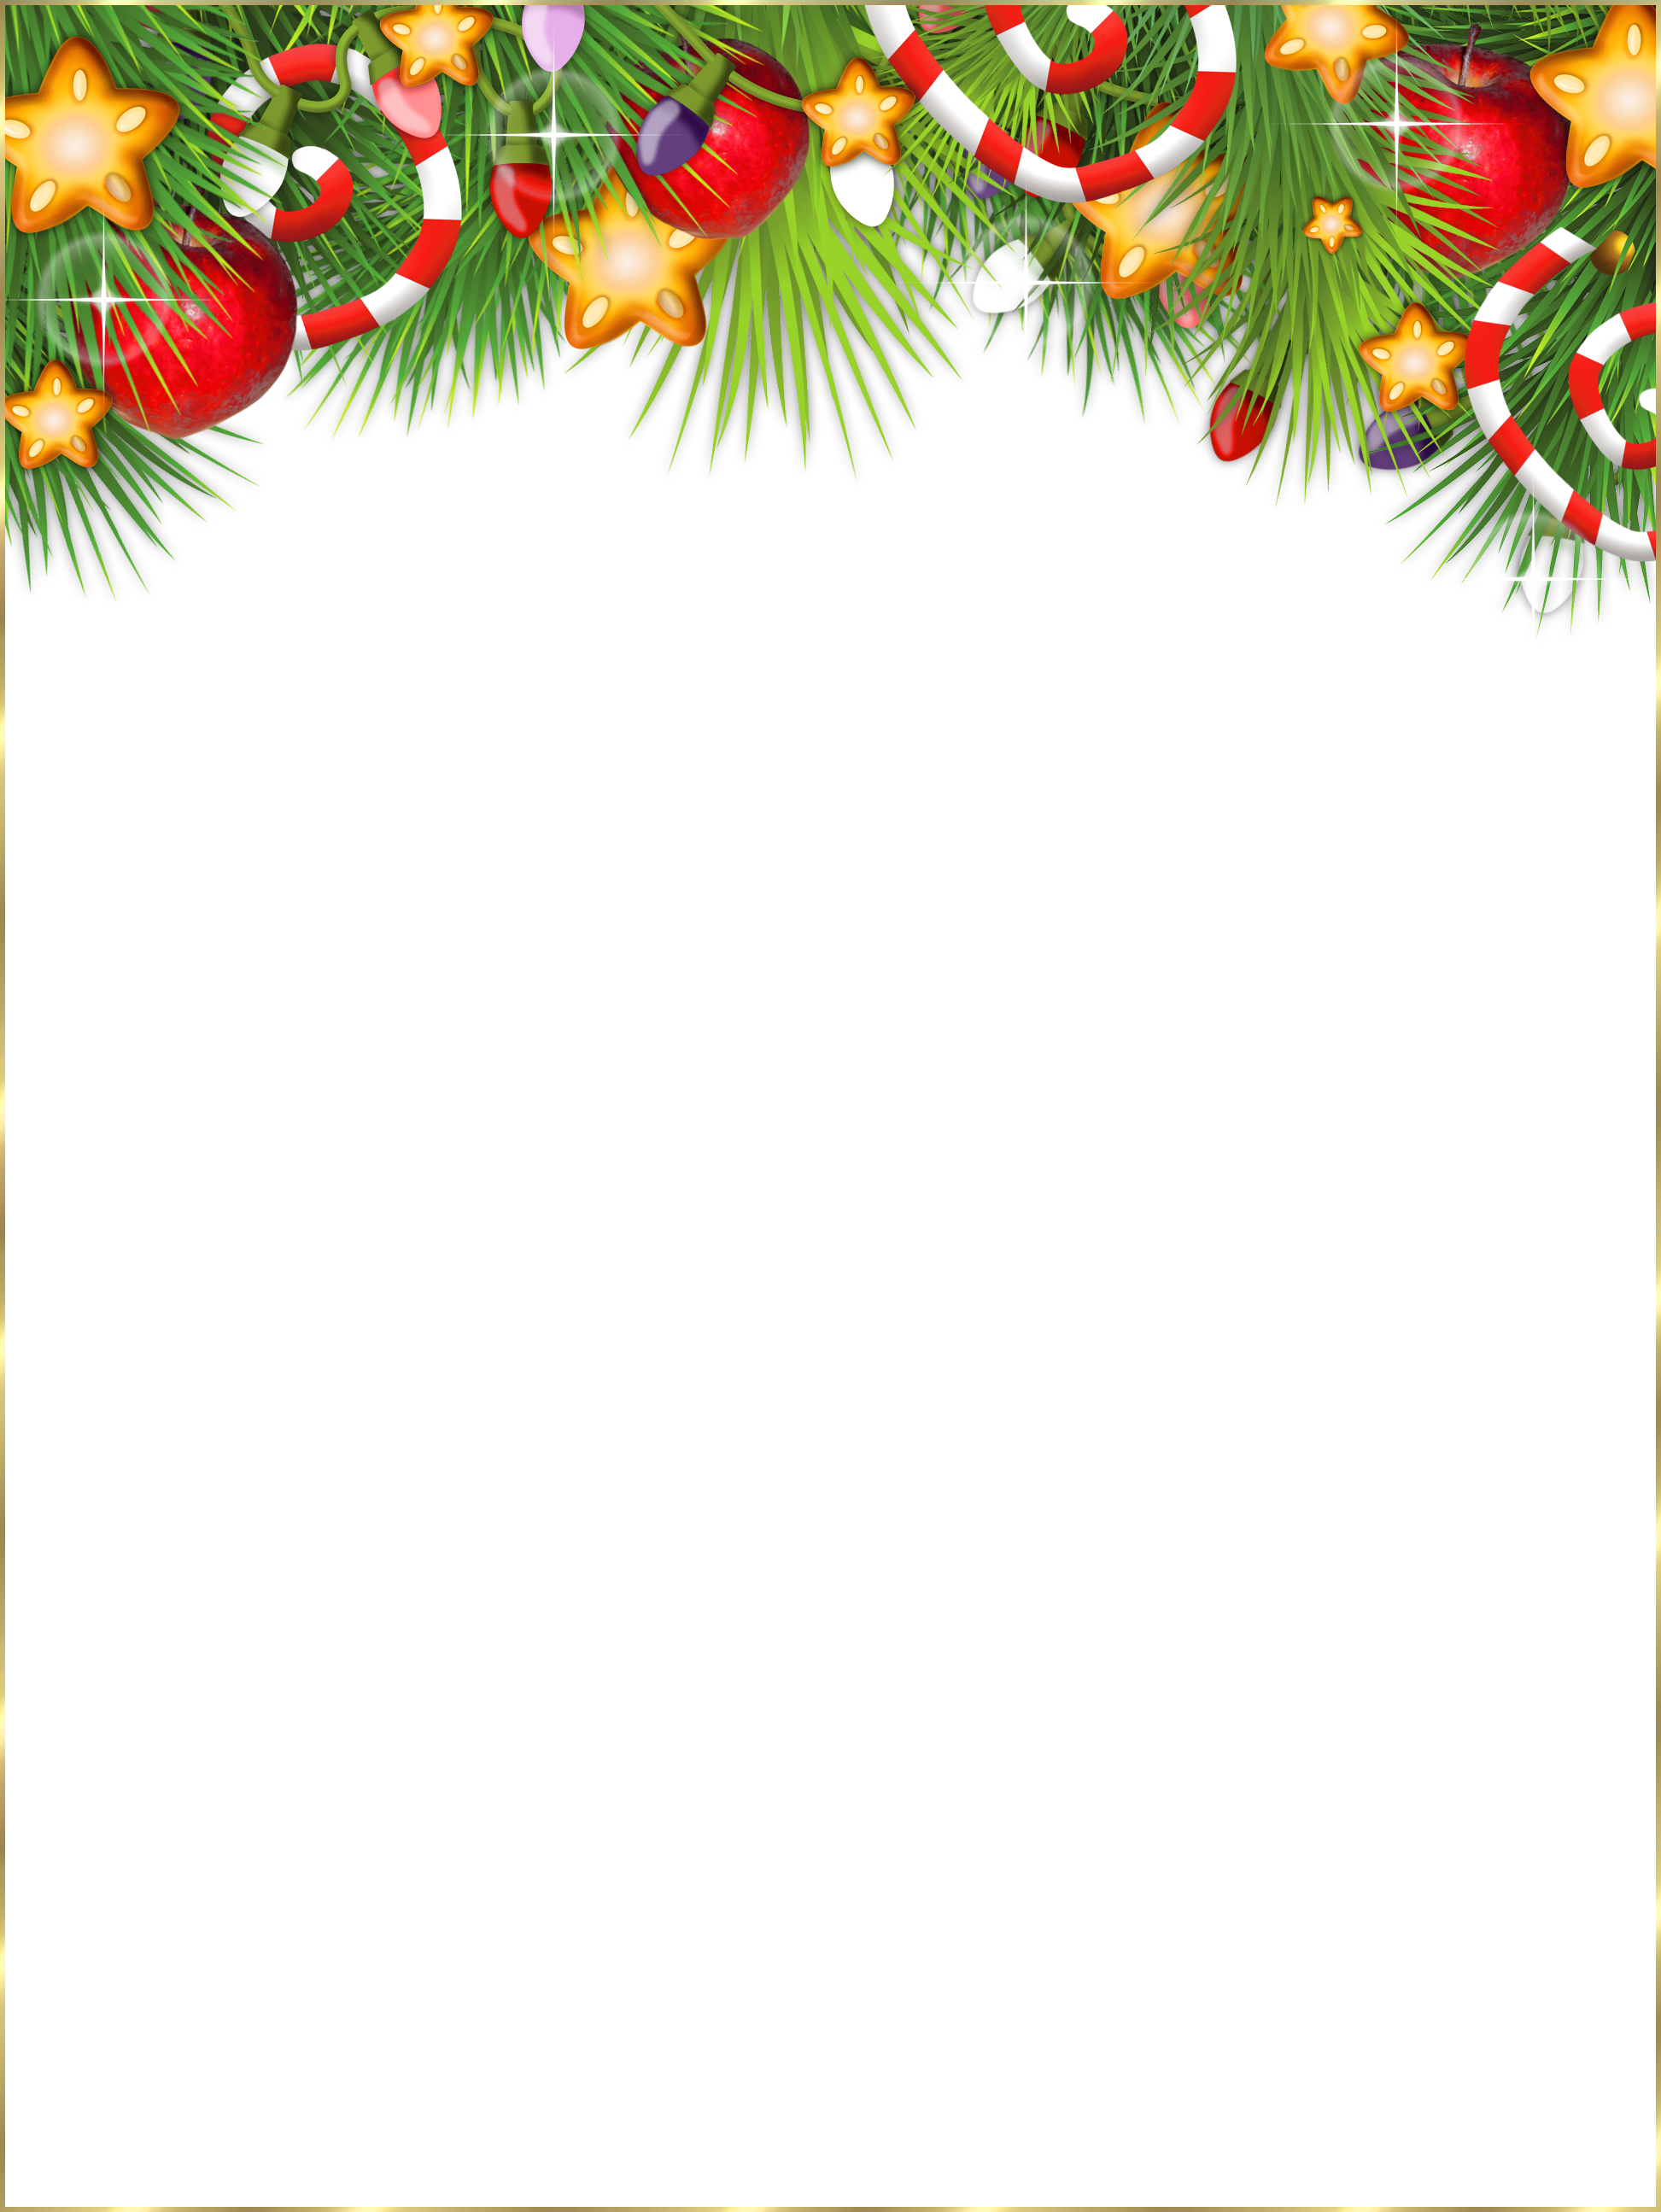 Frames clipart holiday. Cute transparent christmas photo